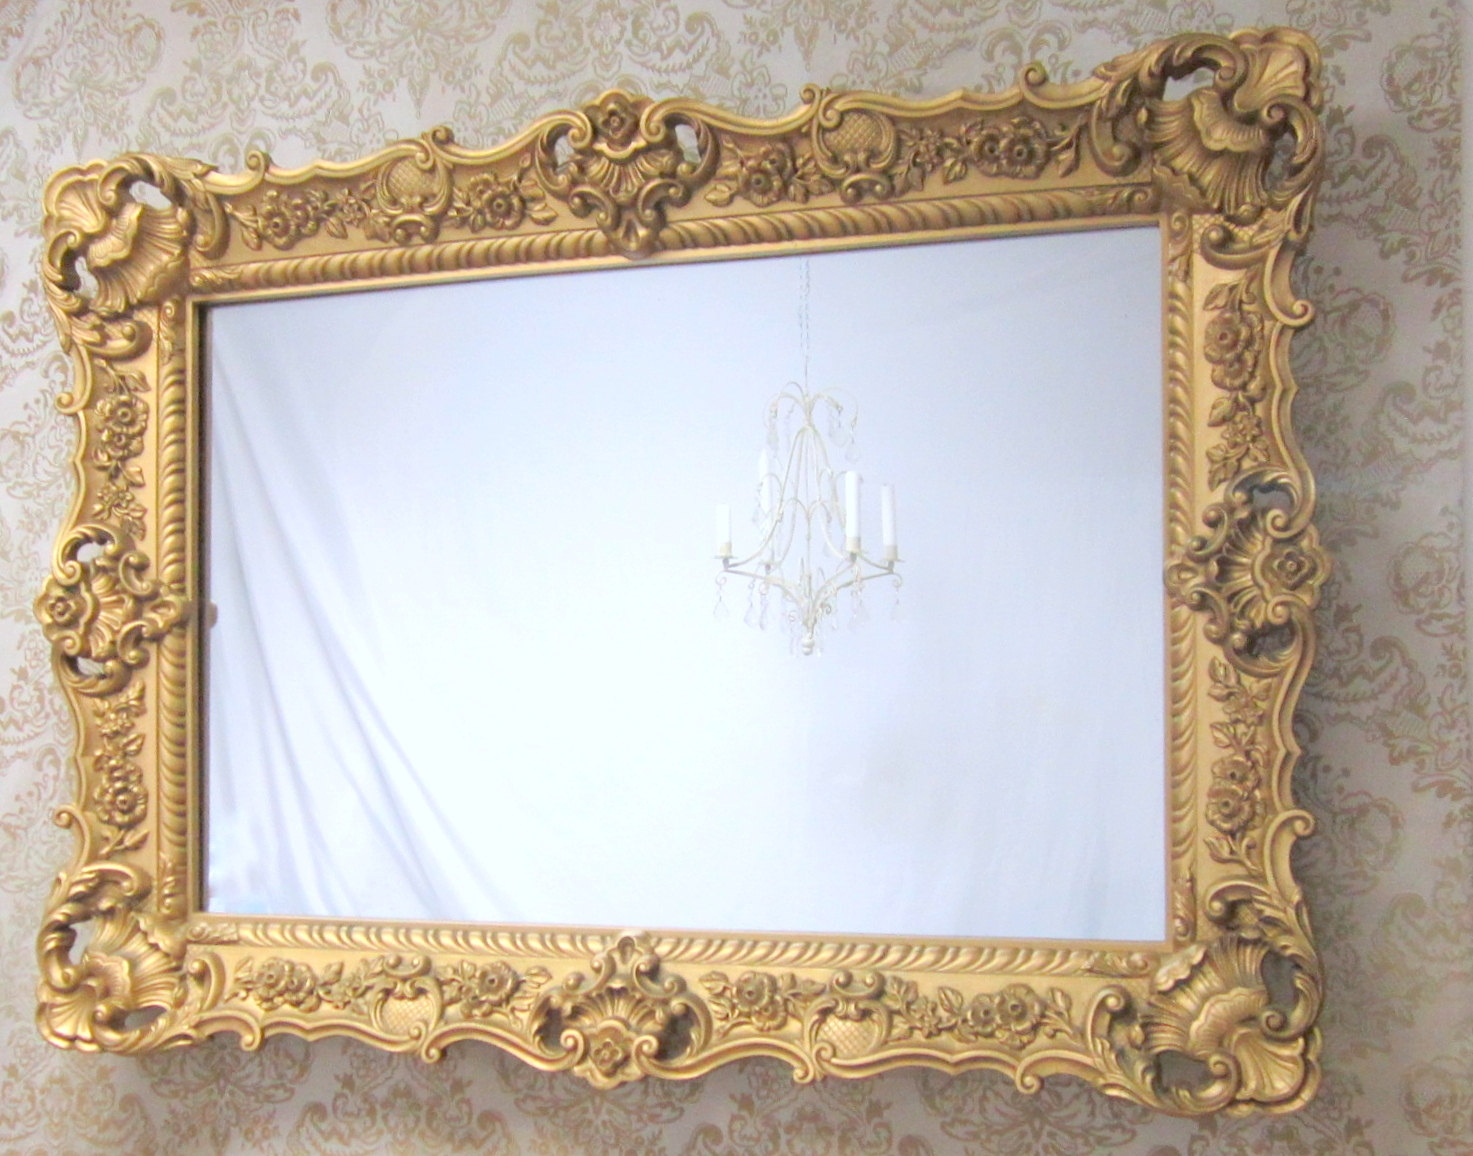 Hollywood Regency Mirrors For Sale 45×33 Large Vanity Mirror Within Ornate Gold Mirror (Image 8 of 15)